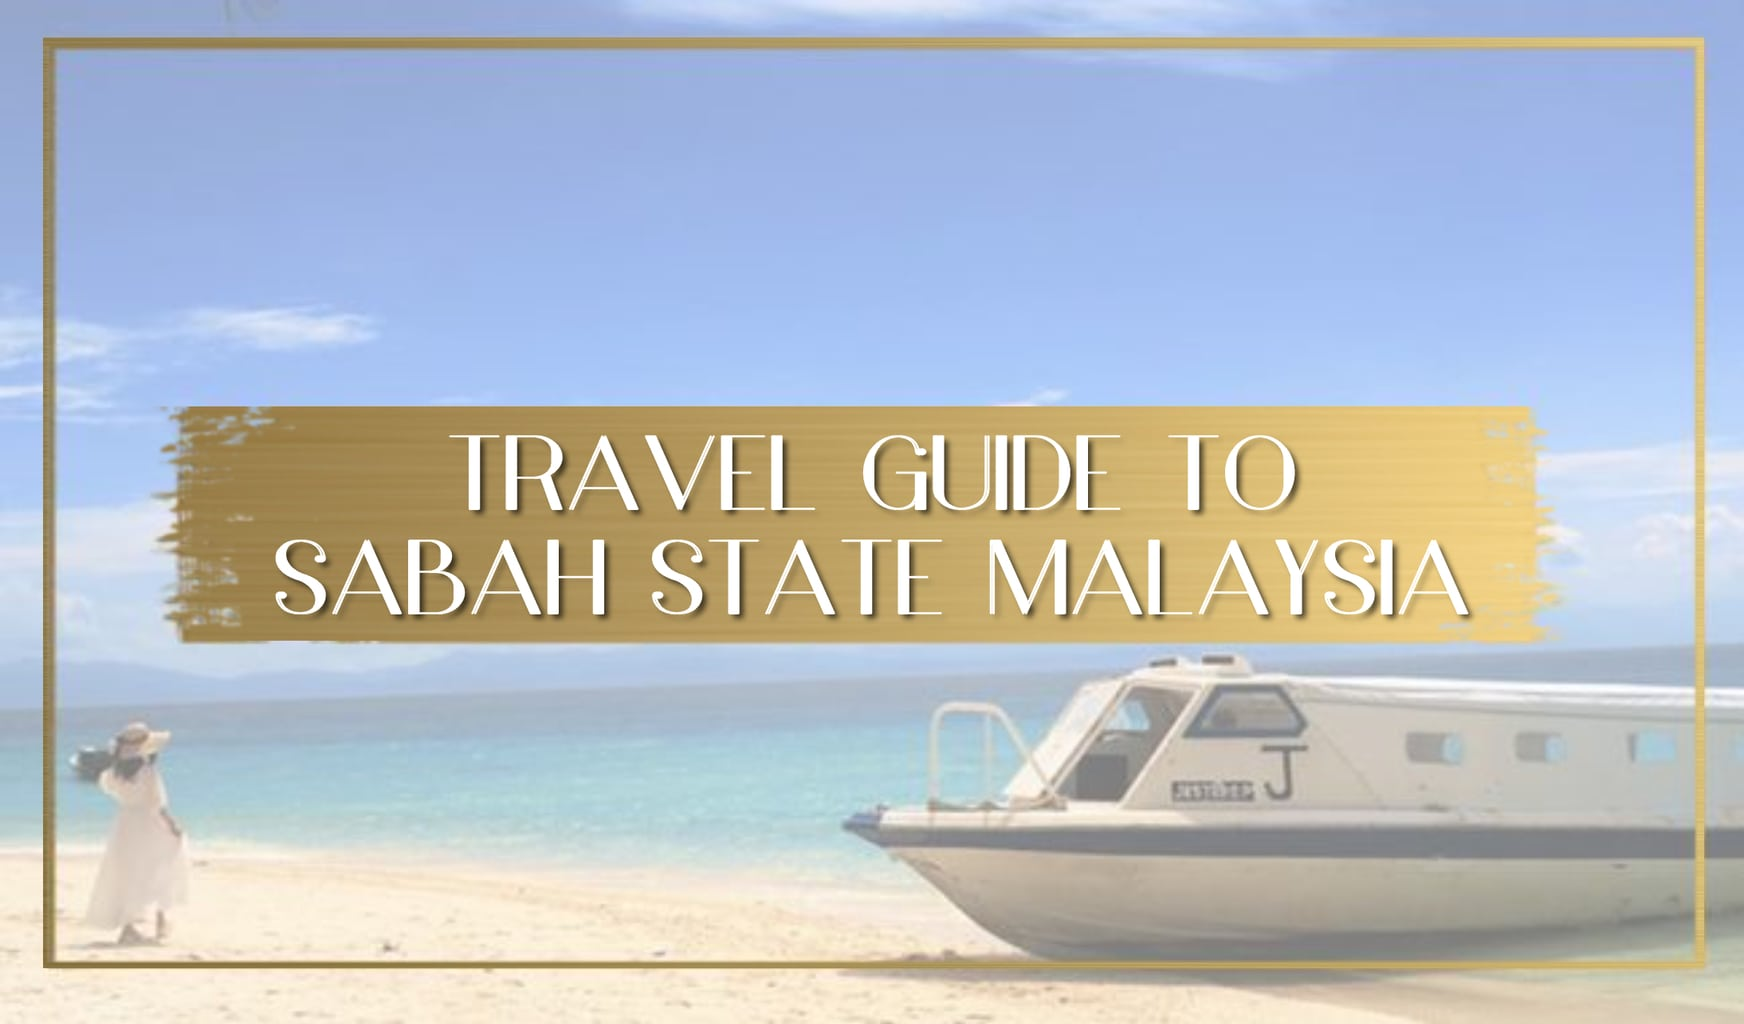 Travel Guide to Sabah Main